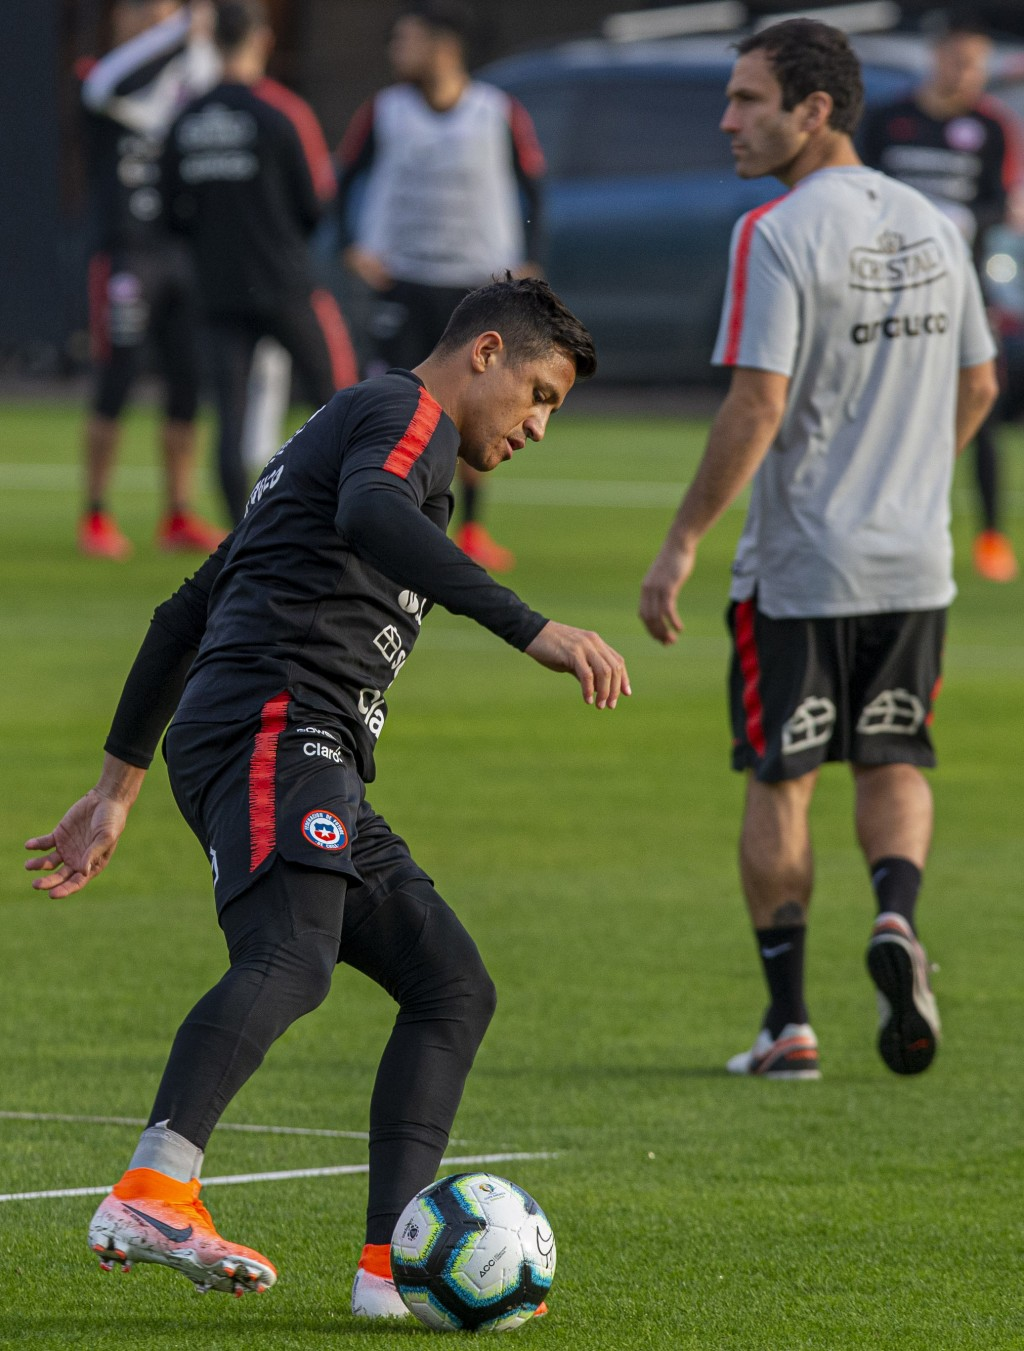 Chile's Alexis Sanchez controls a soccer ball during a training session in Santiago, Chile, Monday, June 3, 2019, ahead of the Copa America in neighbo